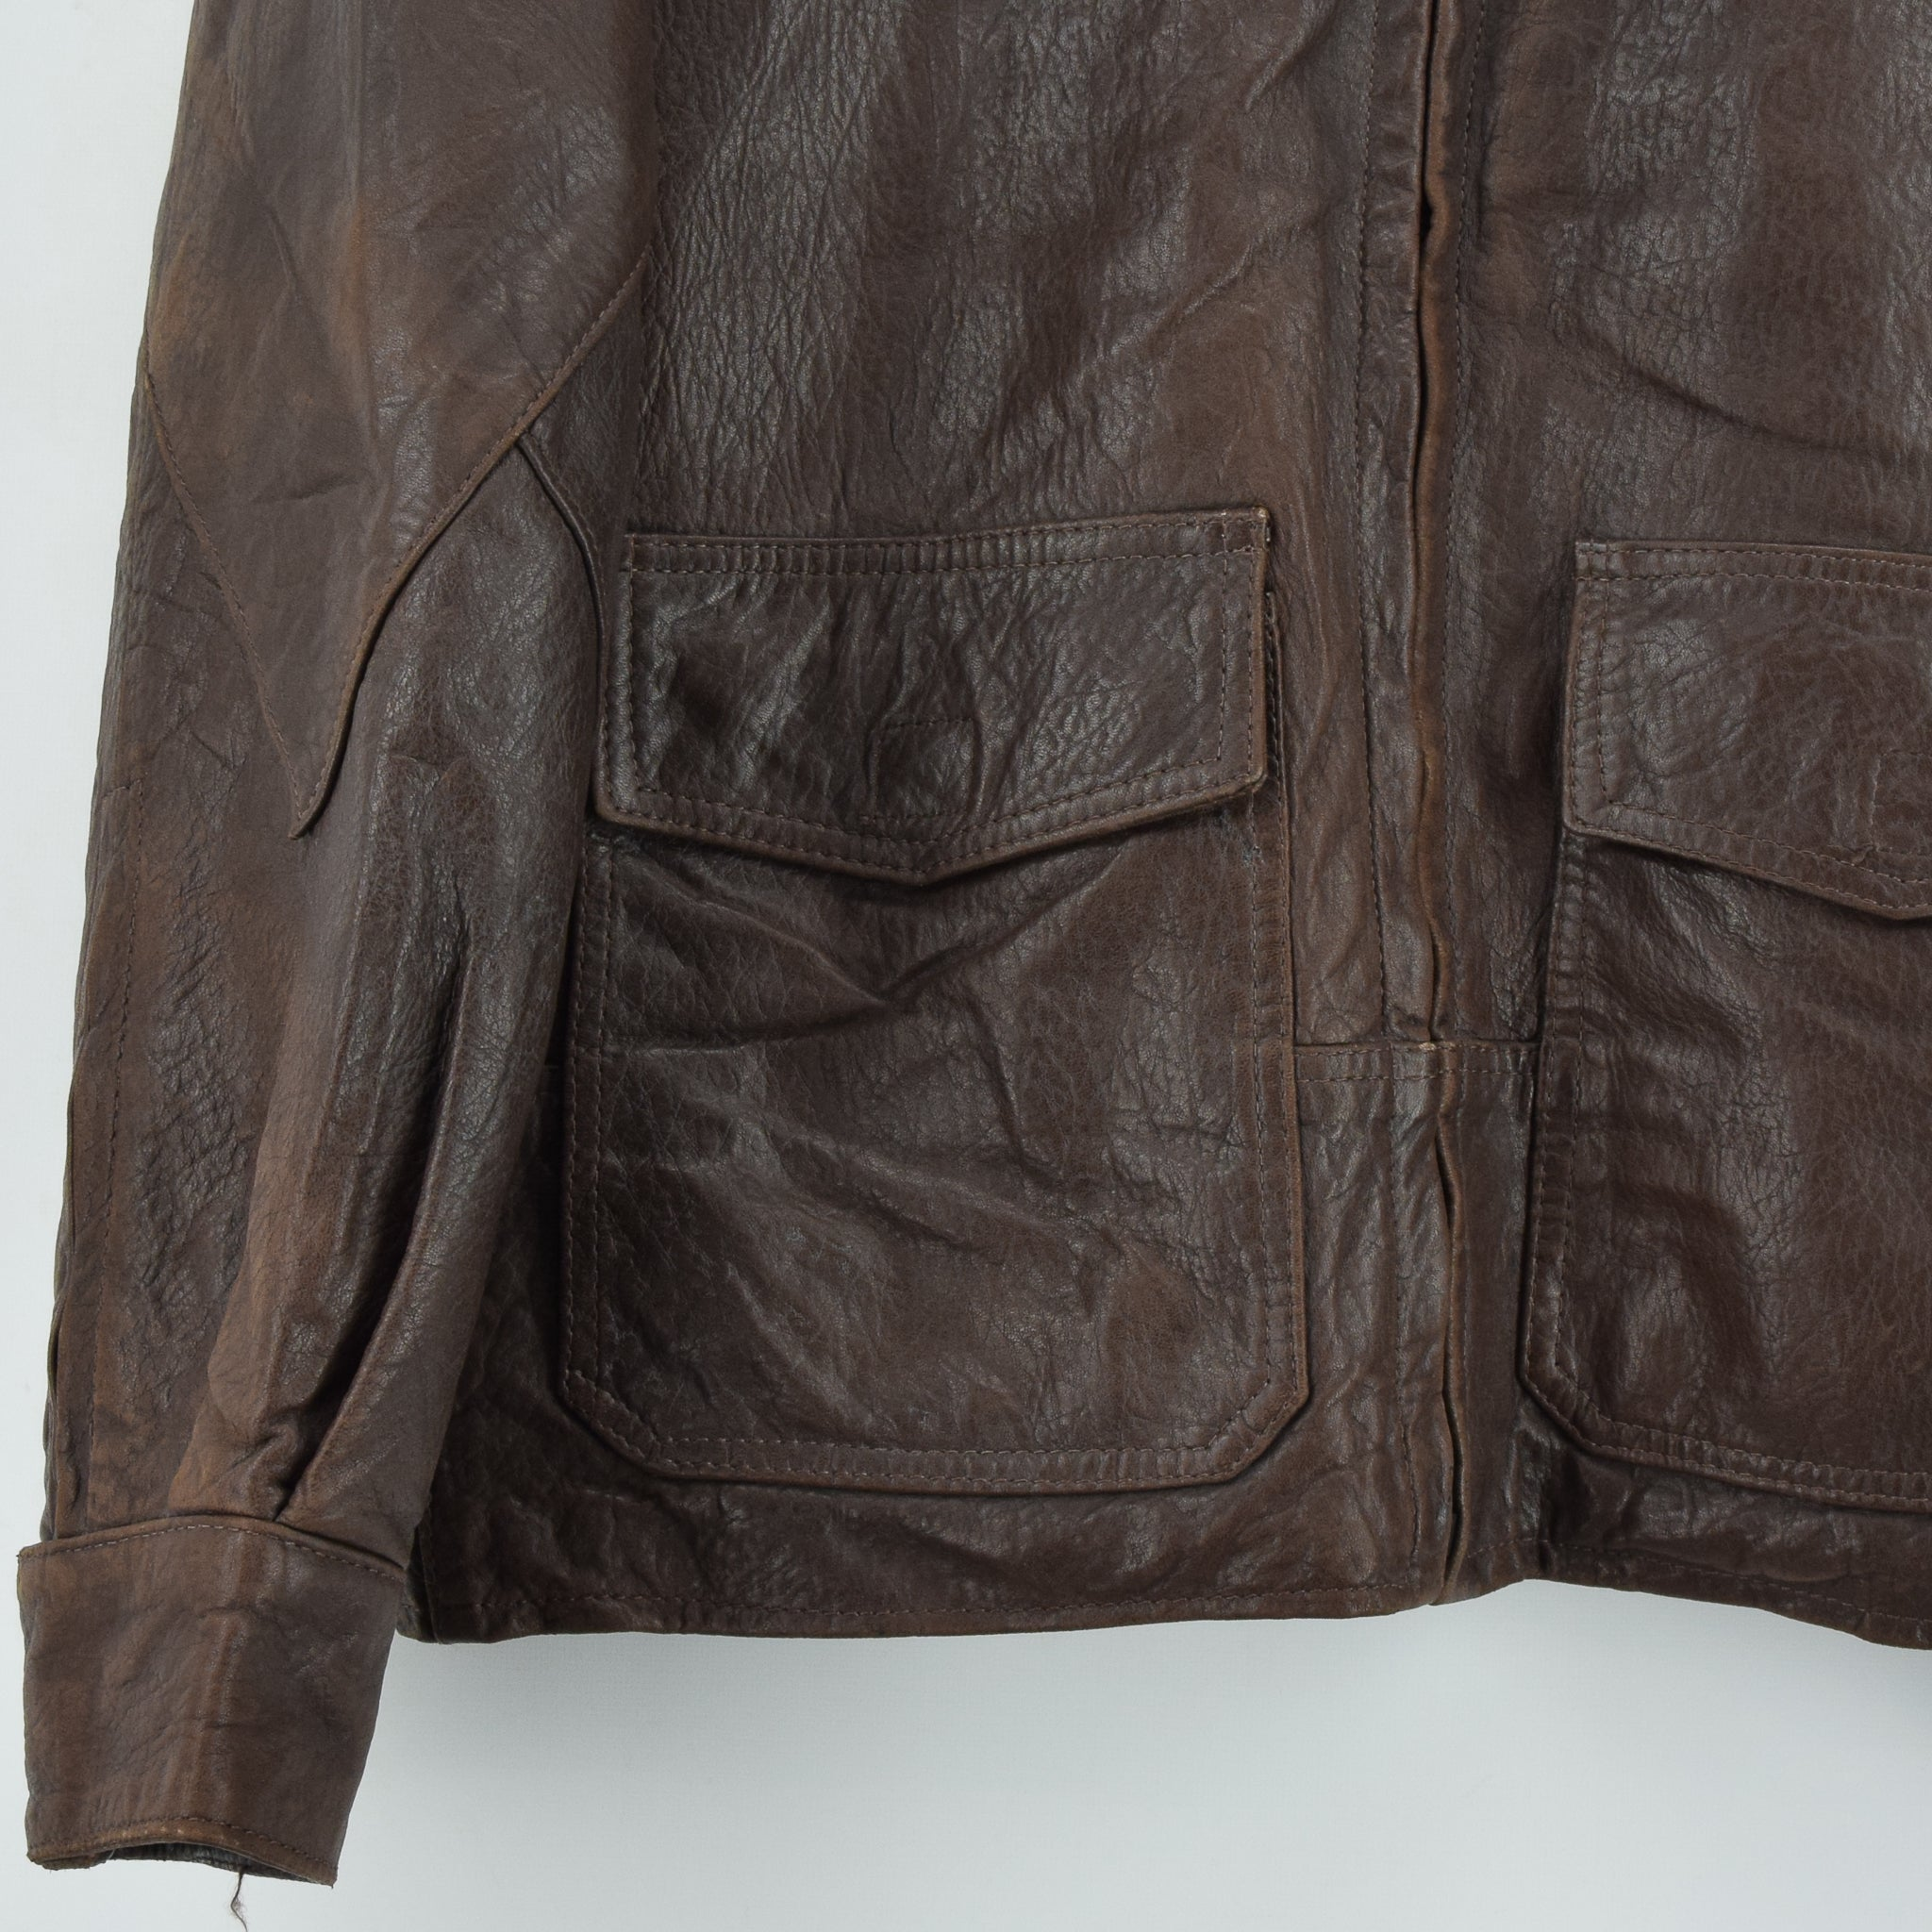 Vintage Banana Republic Brown Leather Bomber Biker Style Jacket Made in USA L front hem